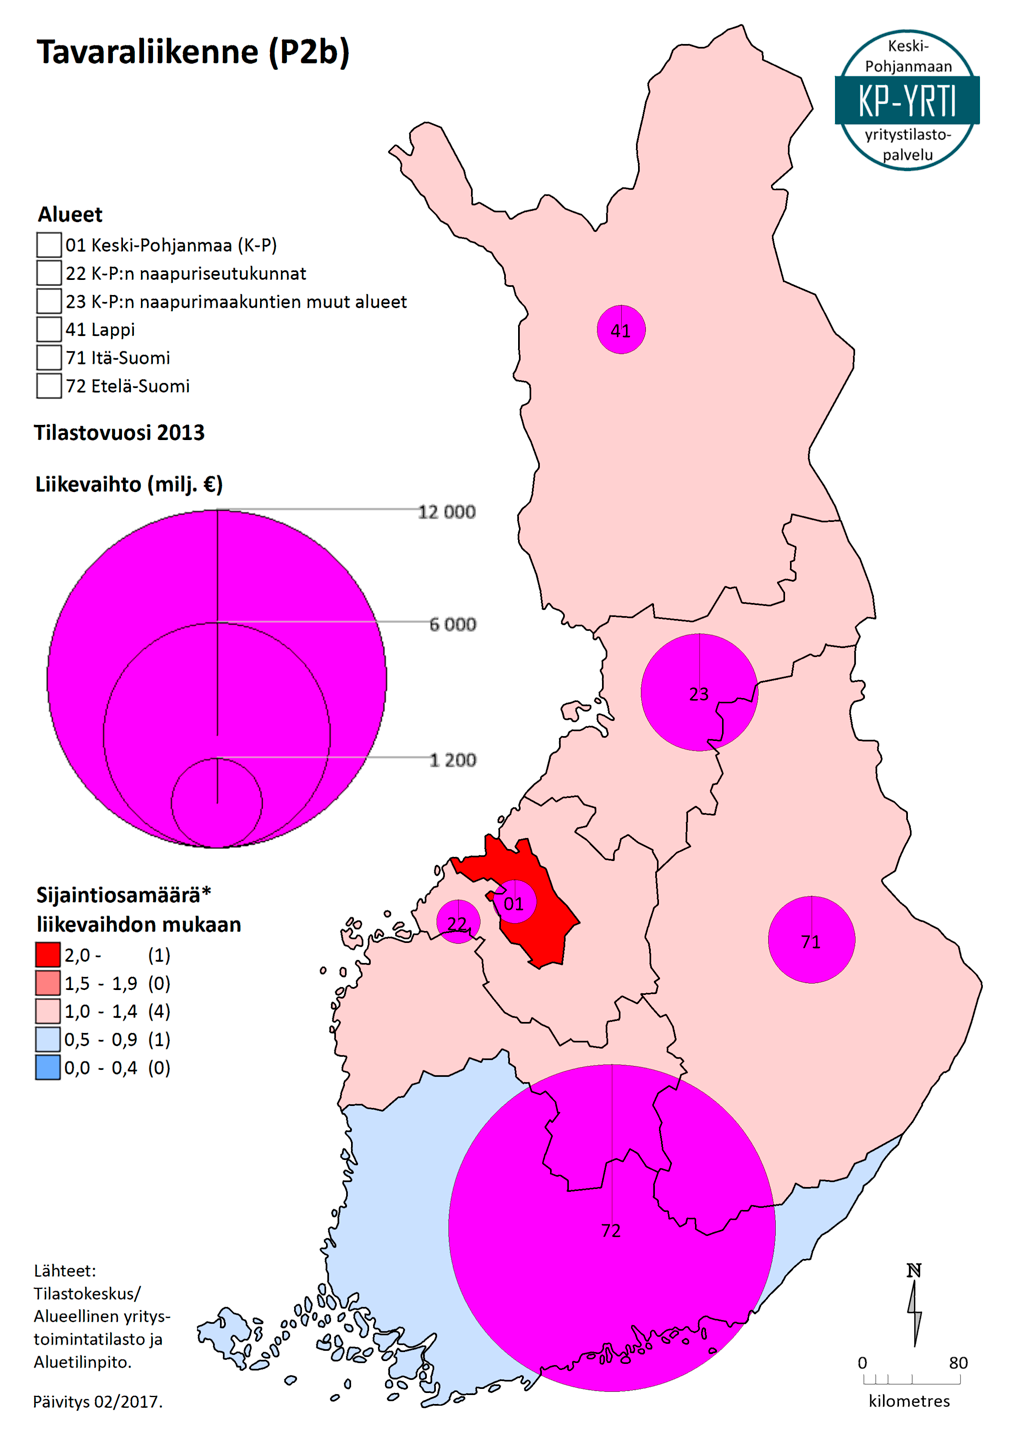 58-P2b-map-lv-2013-p201702.png